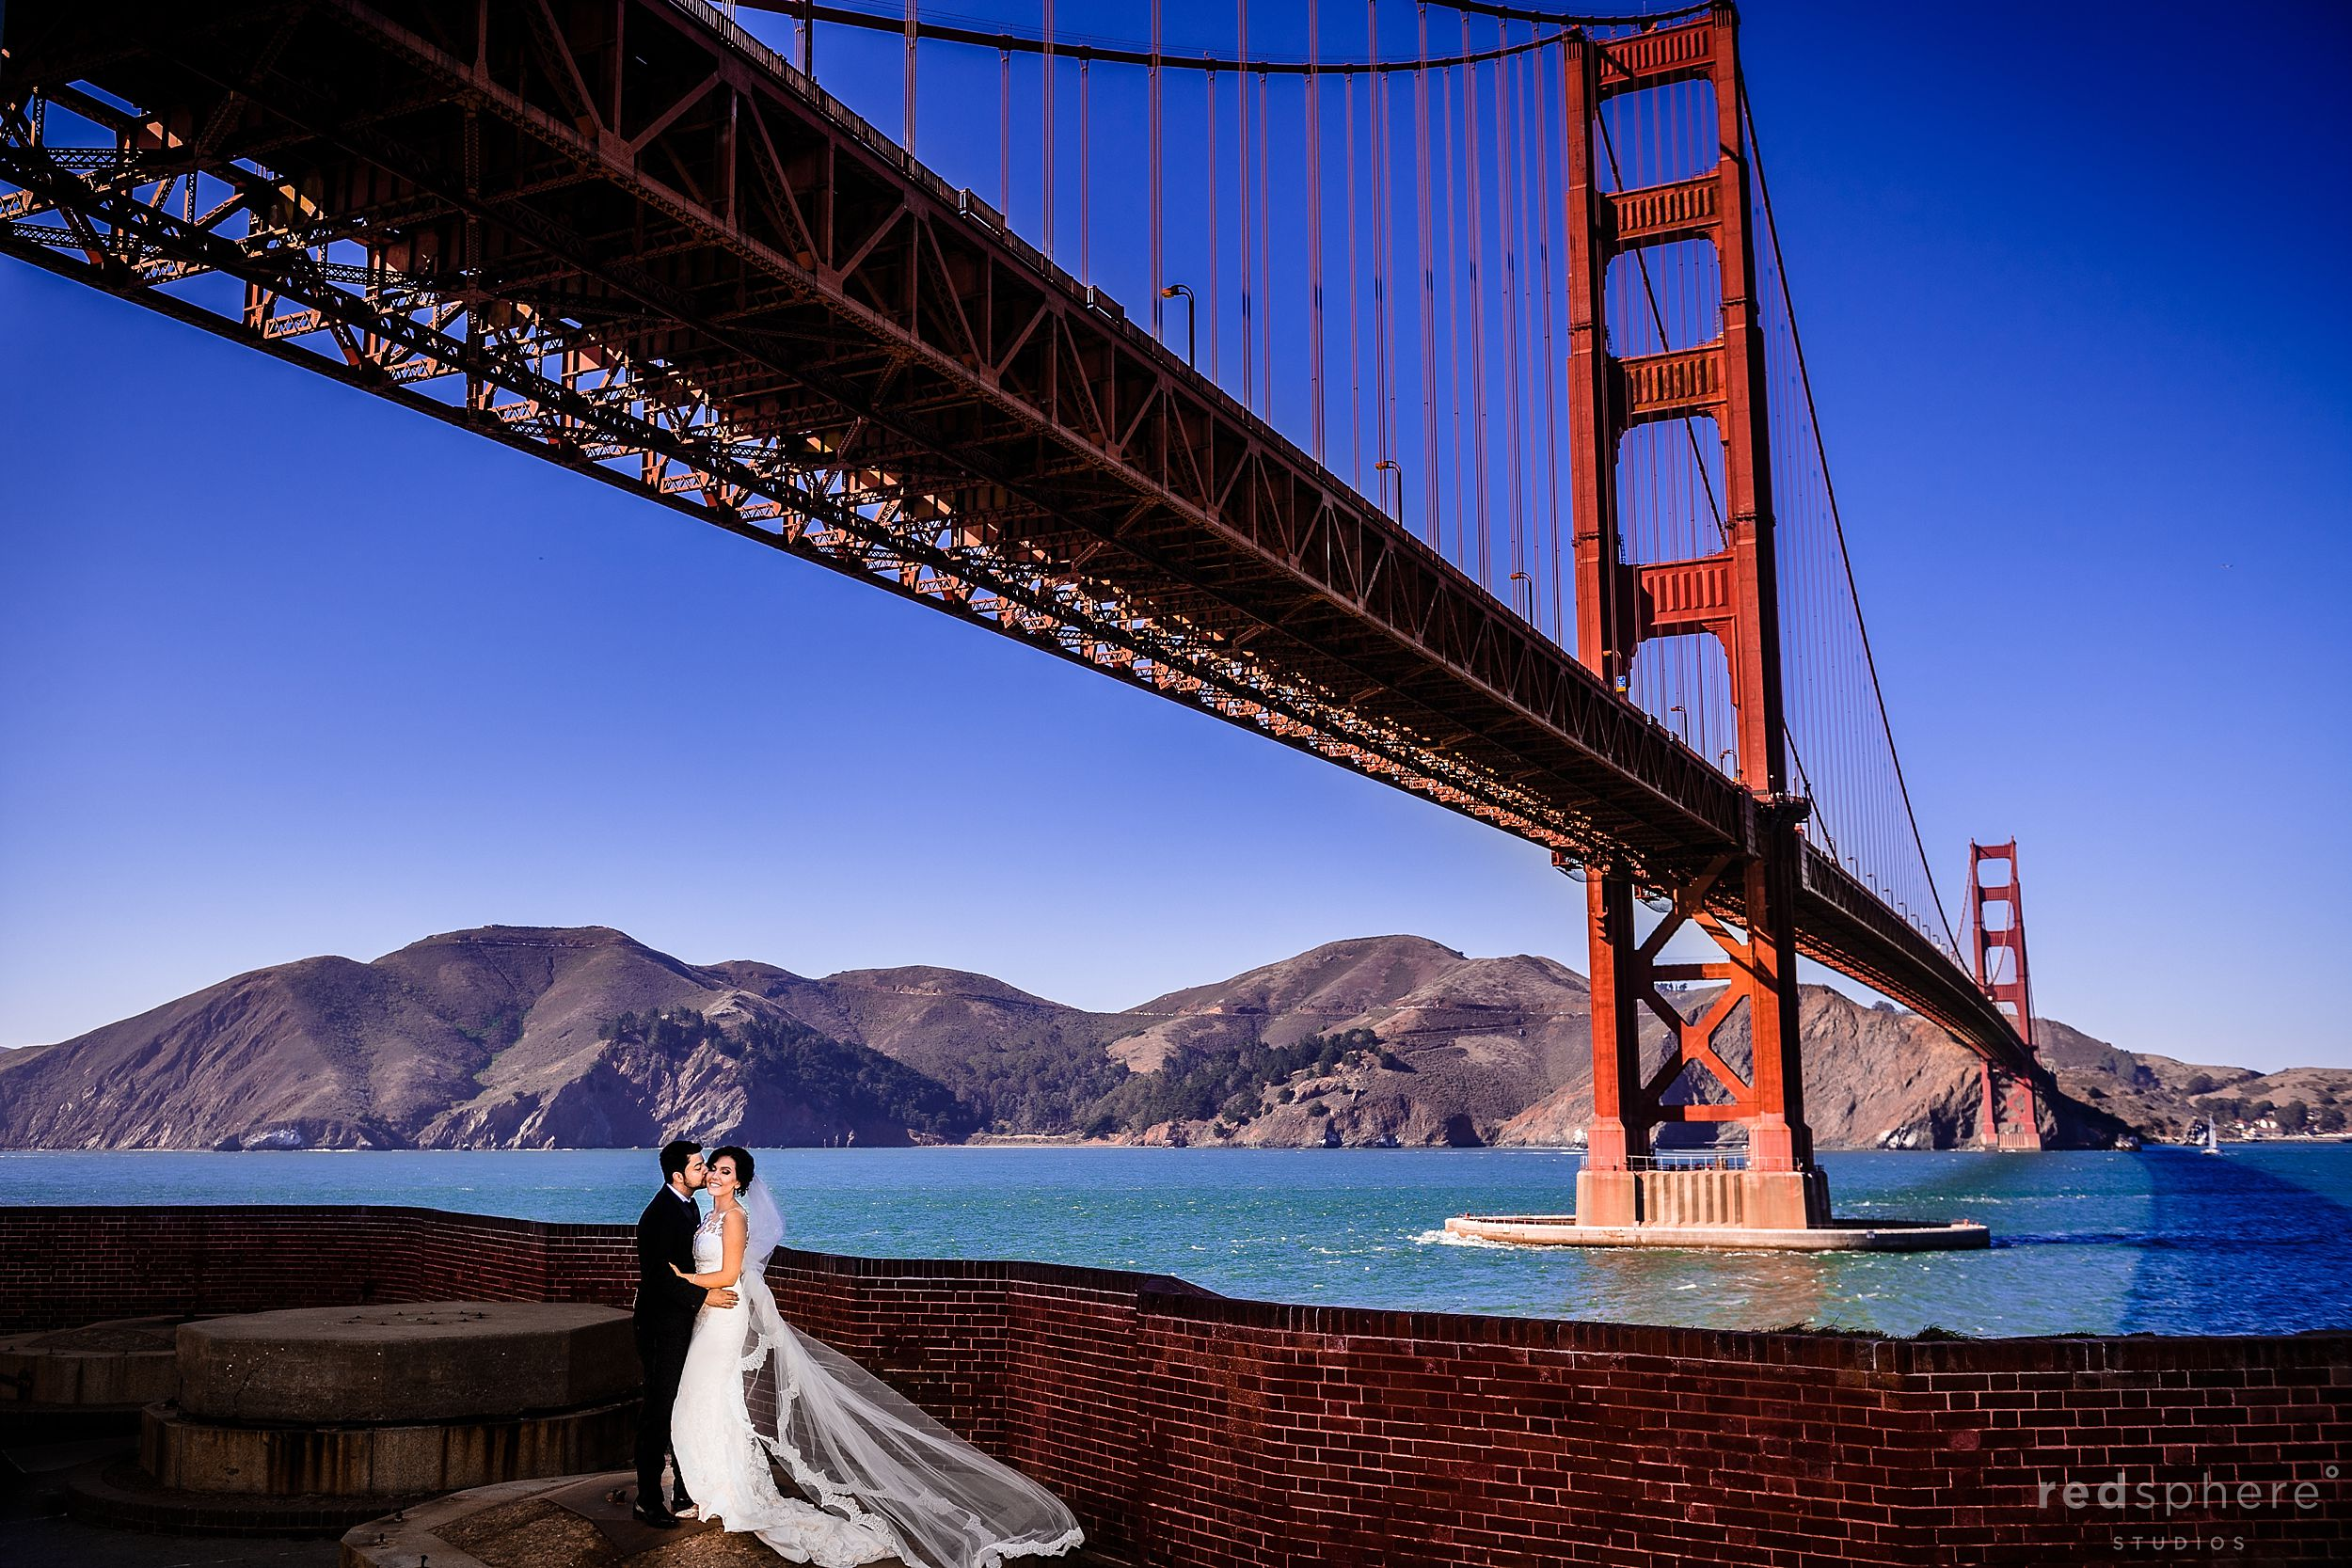 Wedding portrait in front of the Golden Gate Bridge San Francisco